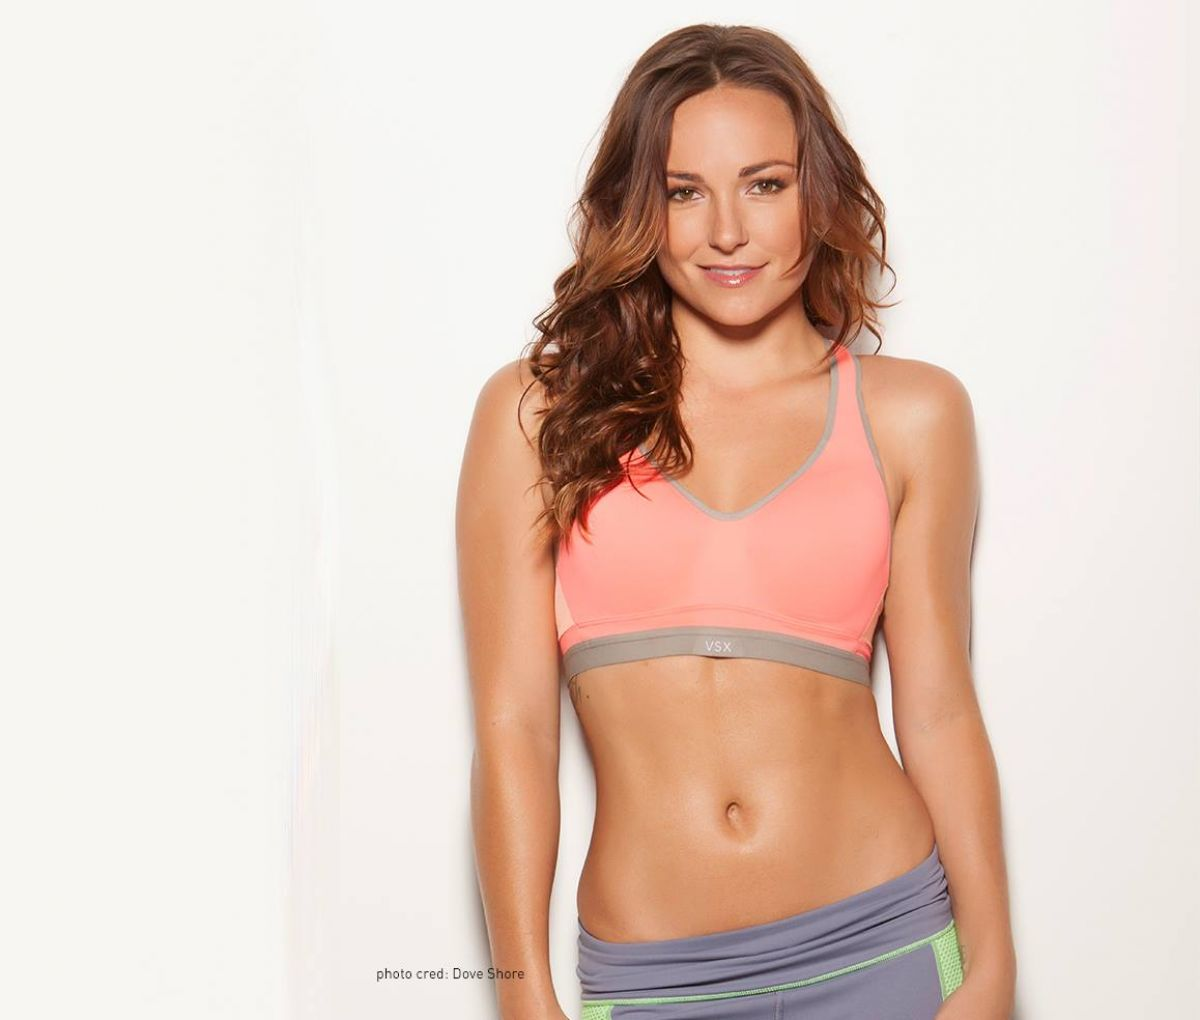 Briana Evigan At Dove Shore Photoshoot For Carbon38